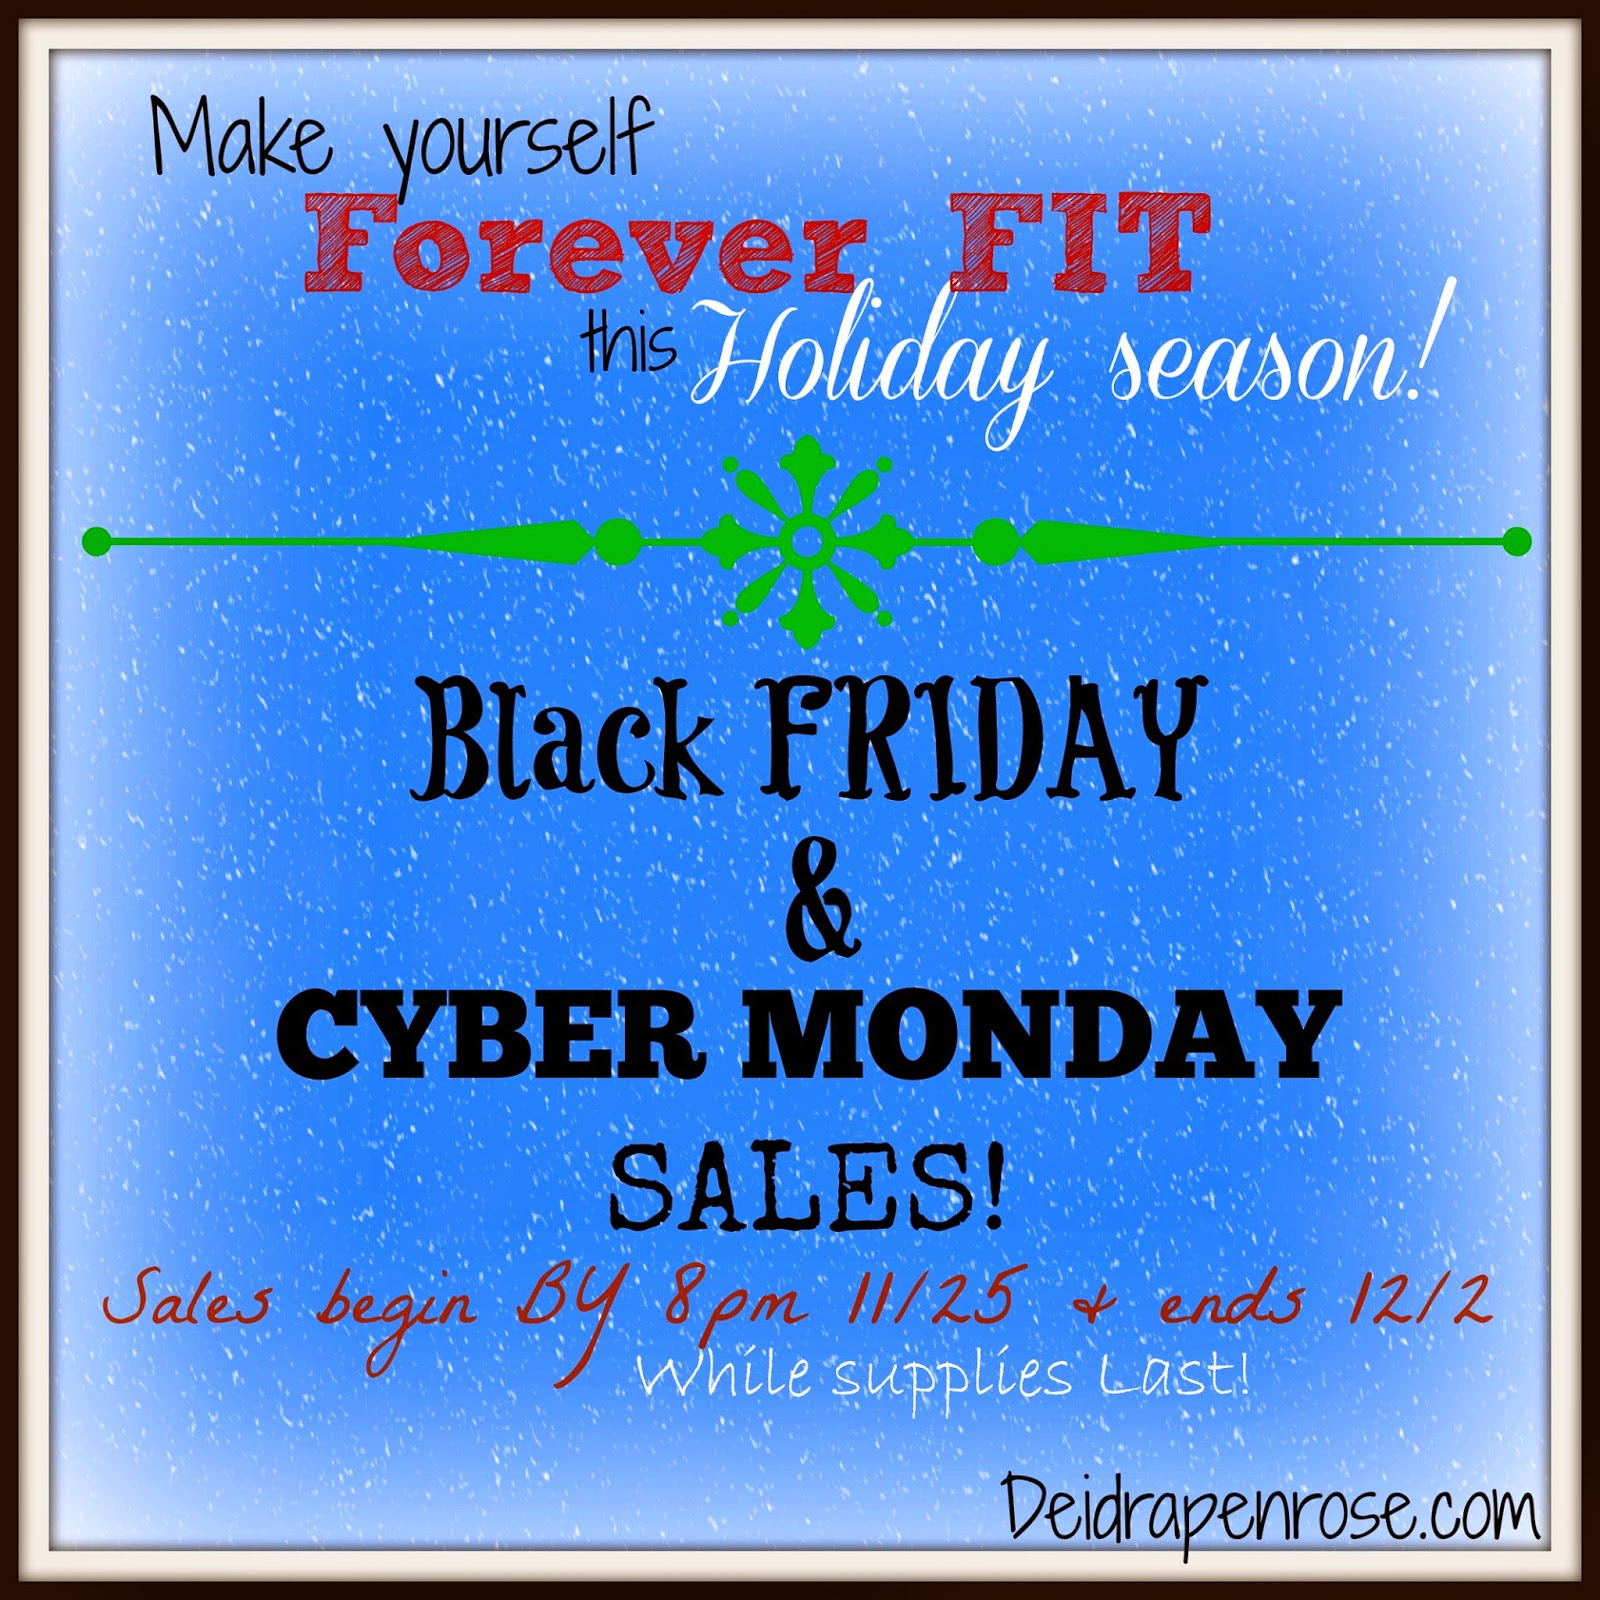 Deidra Penrose, Team Beachbody Black Friday and Cyber Monday Sales 2014, fitness holiday sales, fitness motivation, p90X sale, P90x2 sale, P90x3 sale, Les mills combat sale, les mills pump sale, hip hop abs sale, weights on sale, stability ball sale, team beachbody clothes sale, turbo fire sale, top fitness coach Harrisburg pa, Slim in 6 sale, healthy fitness tips, clean eating tips, accountability, high impact cardio, weight training at home, dancing cardio workout, challenge group team beachbody, support group fitness